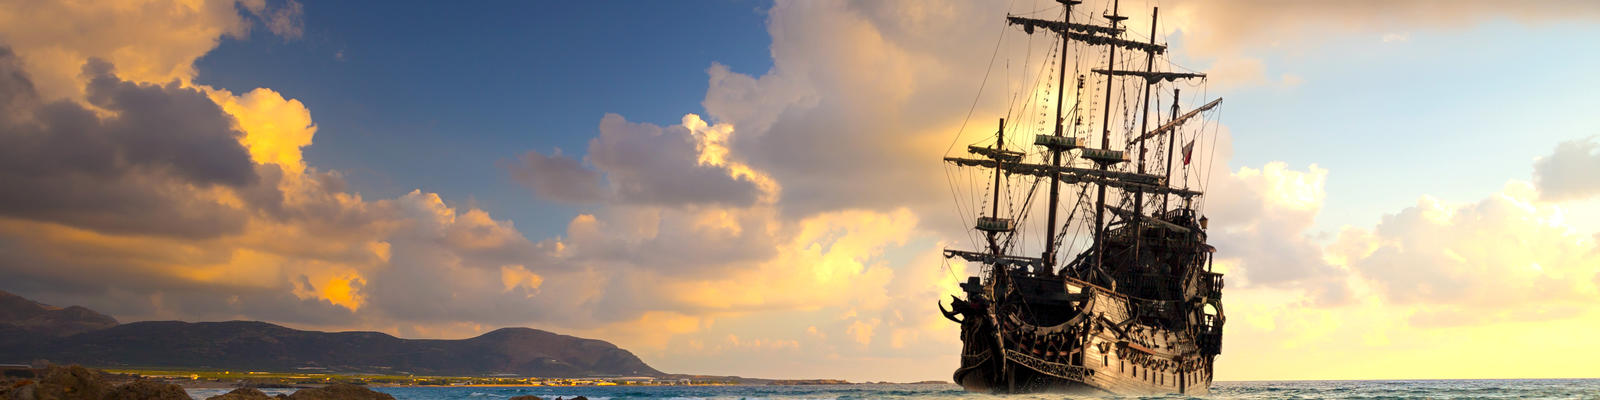 Pirates Then and Now: Could Pirates Attack My Cruise Ship? (Photo: proslgn/Shutterstock)